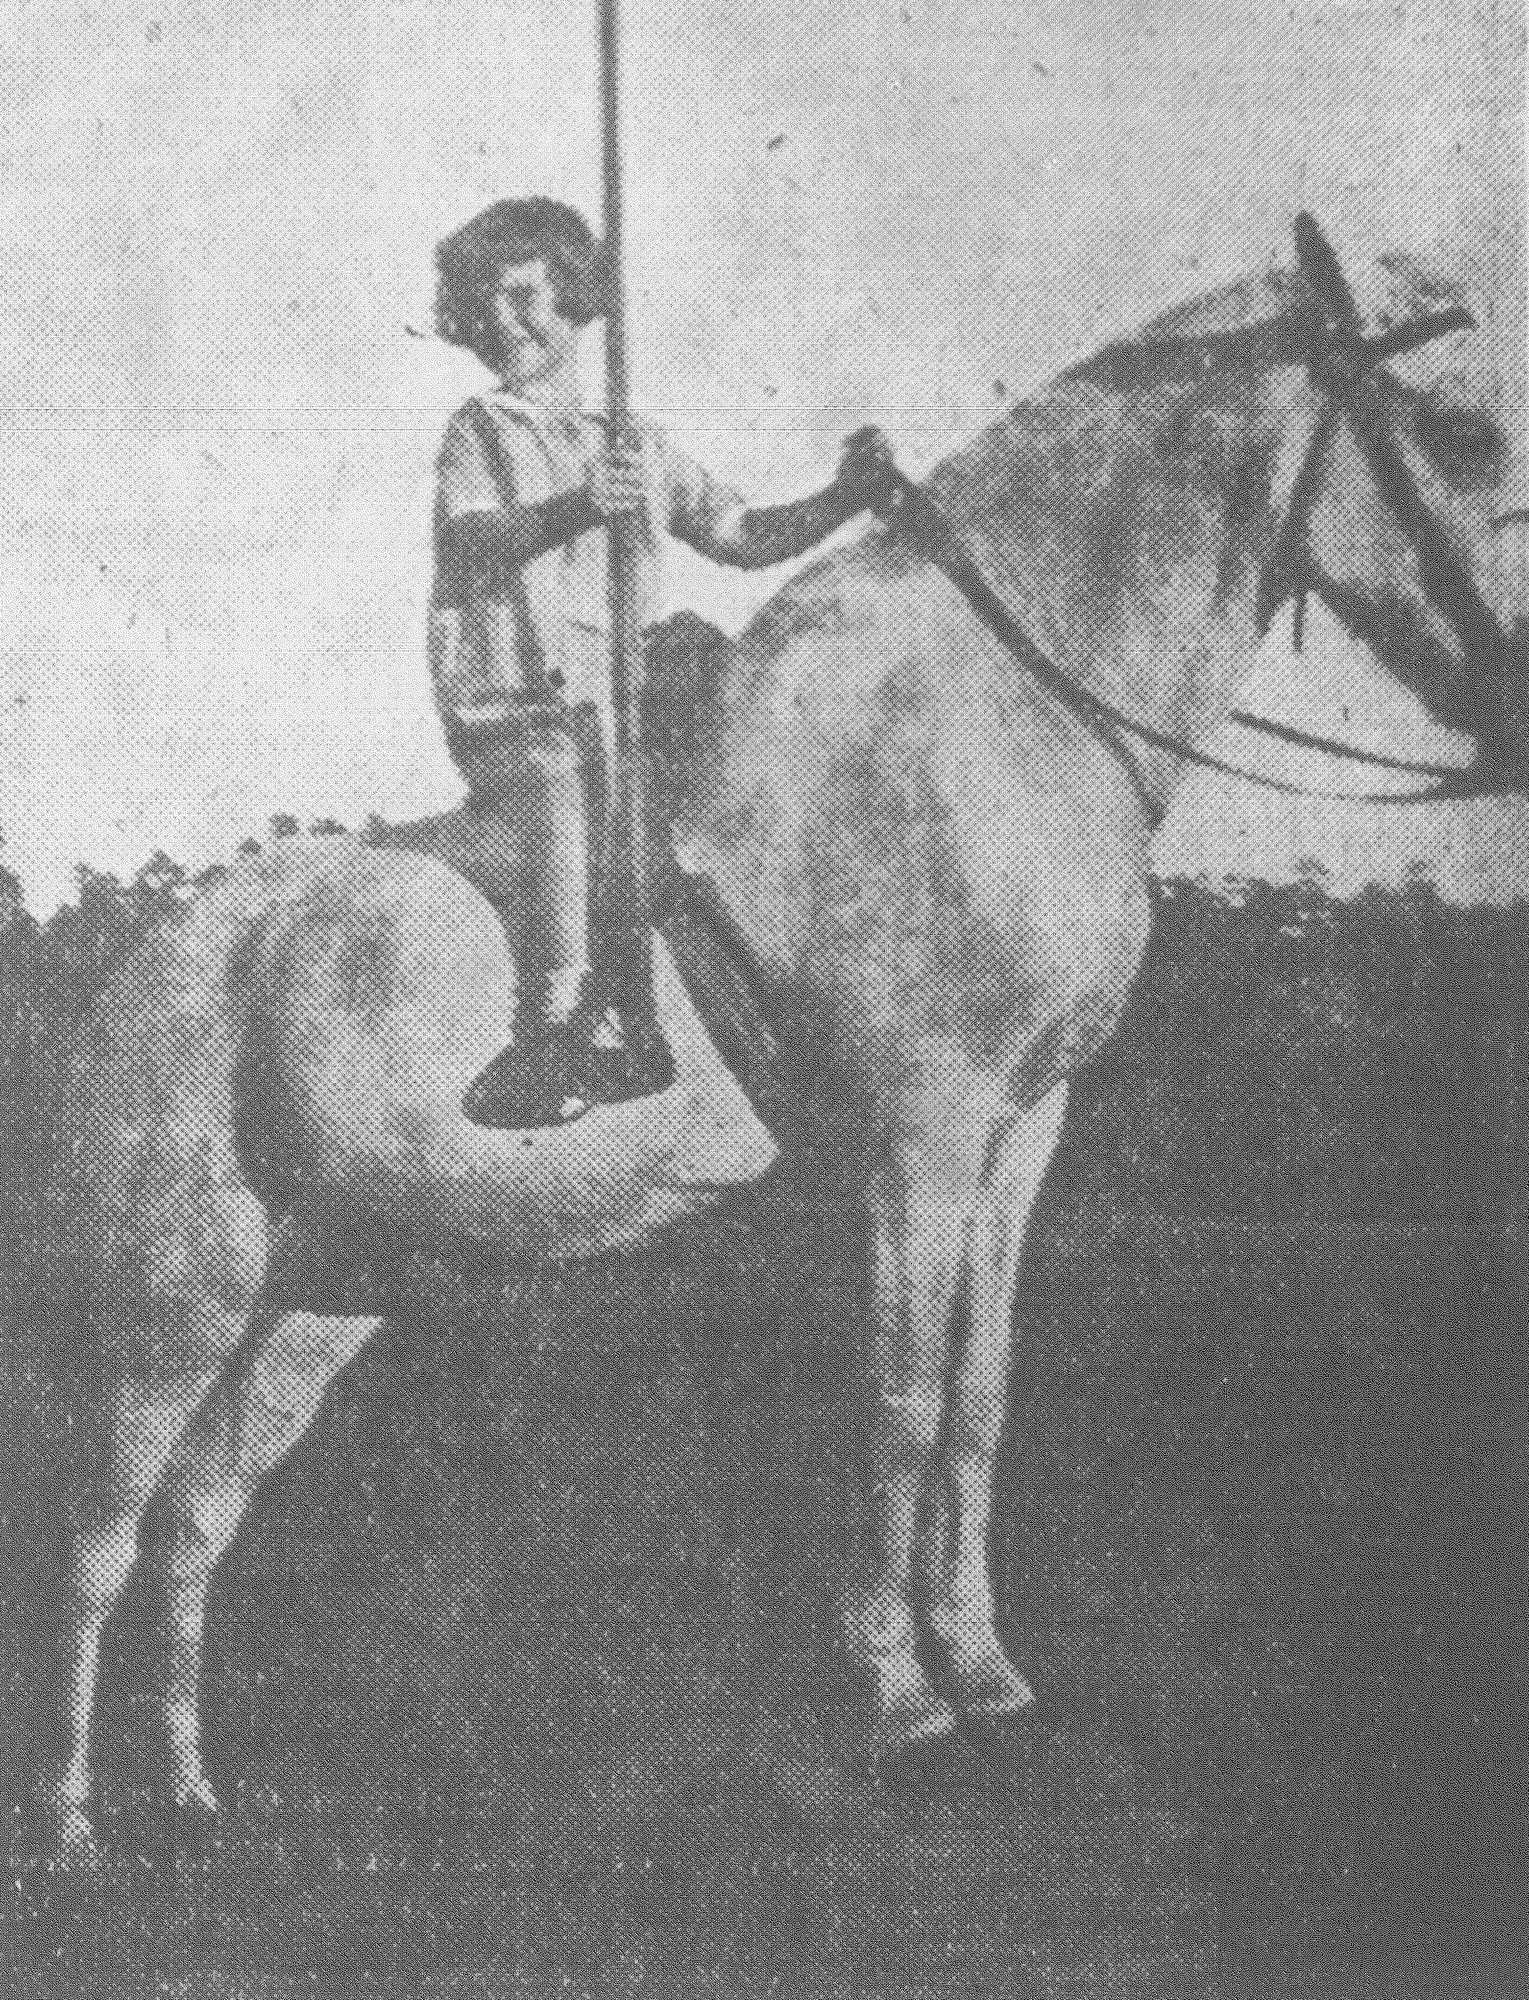 The youngest rider ever known to take part in a tilting tournament, Edith McCants Bookhart, was to ride during the Sumter County Fair in 1932.